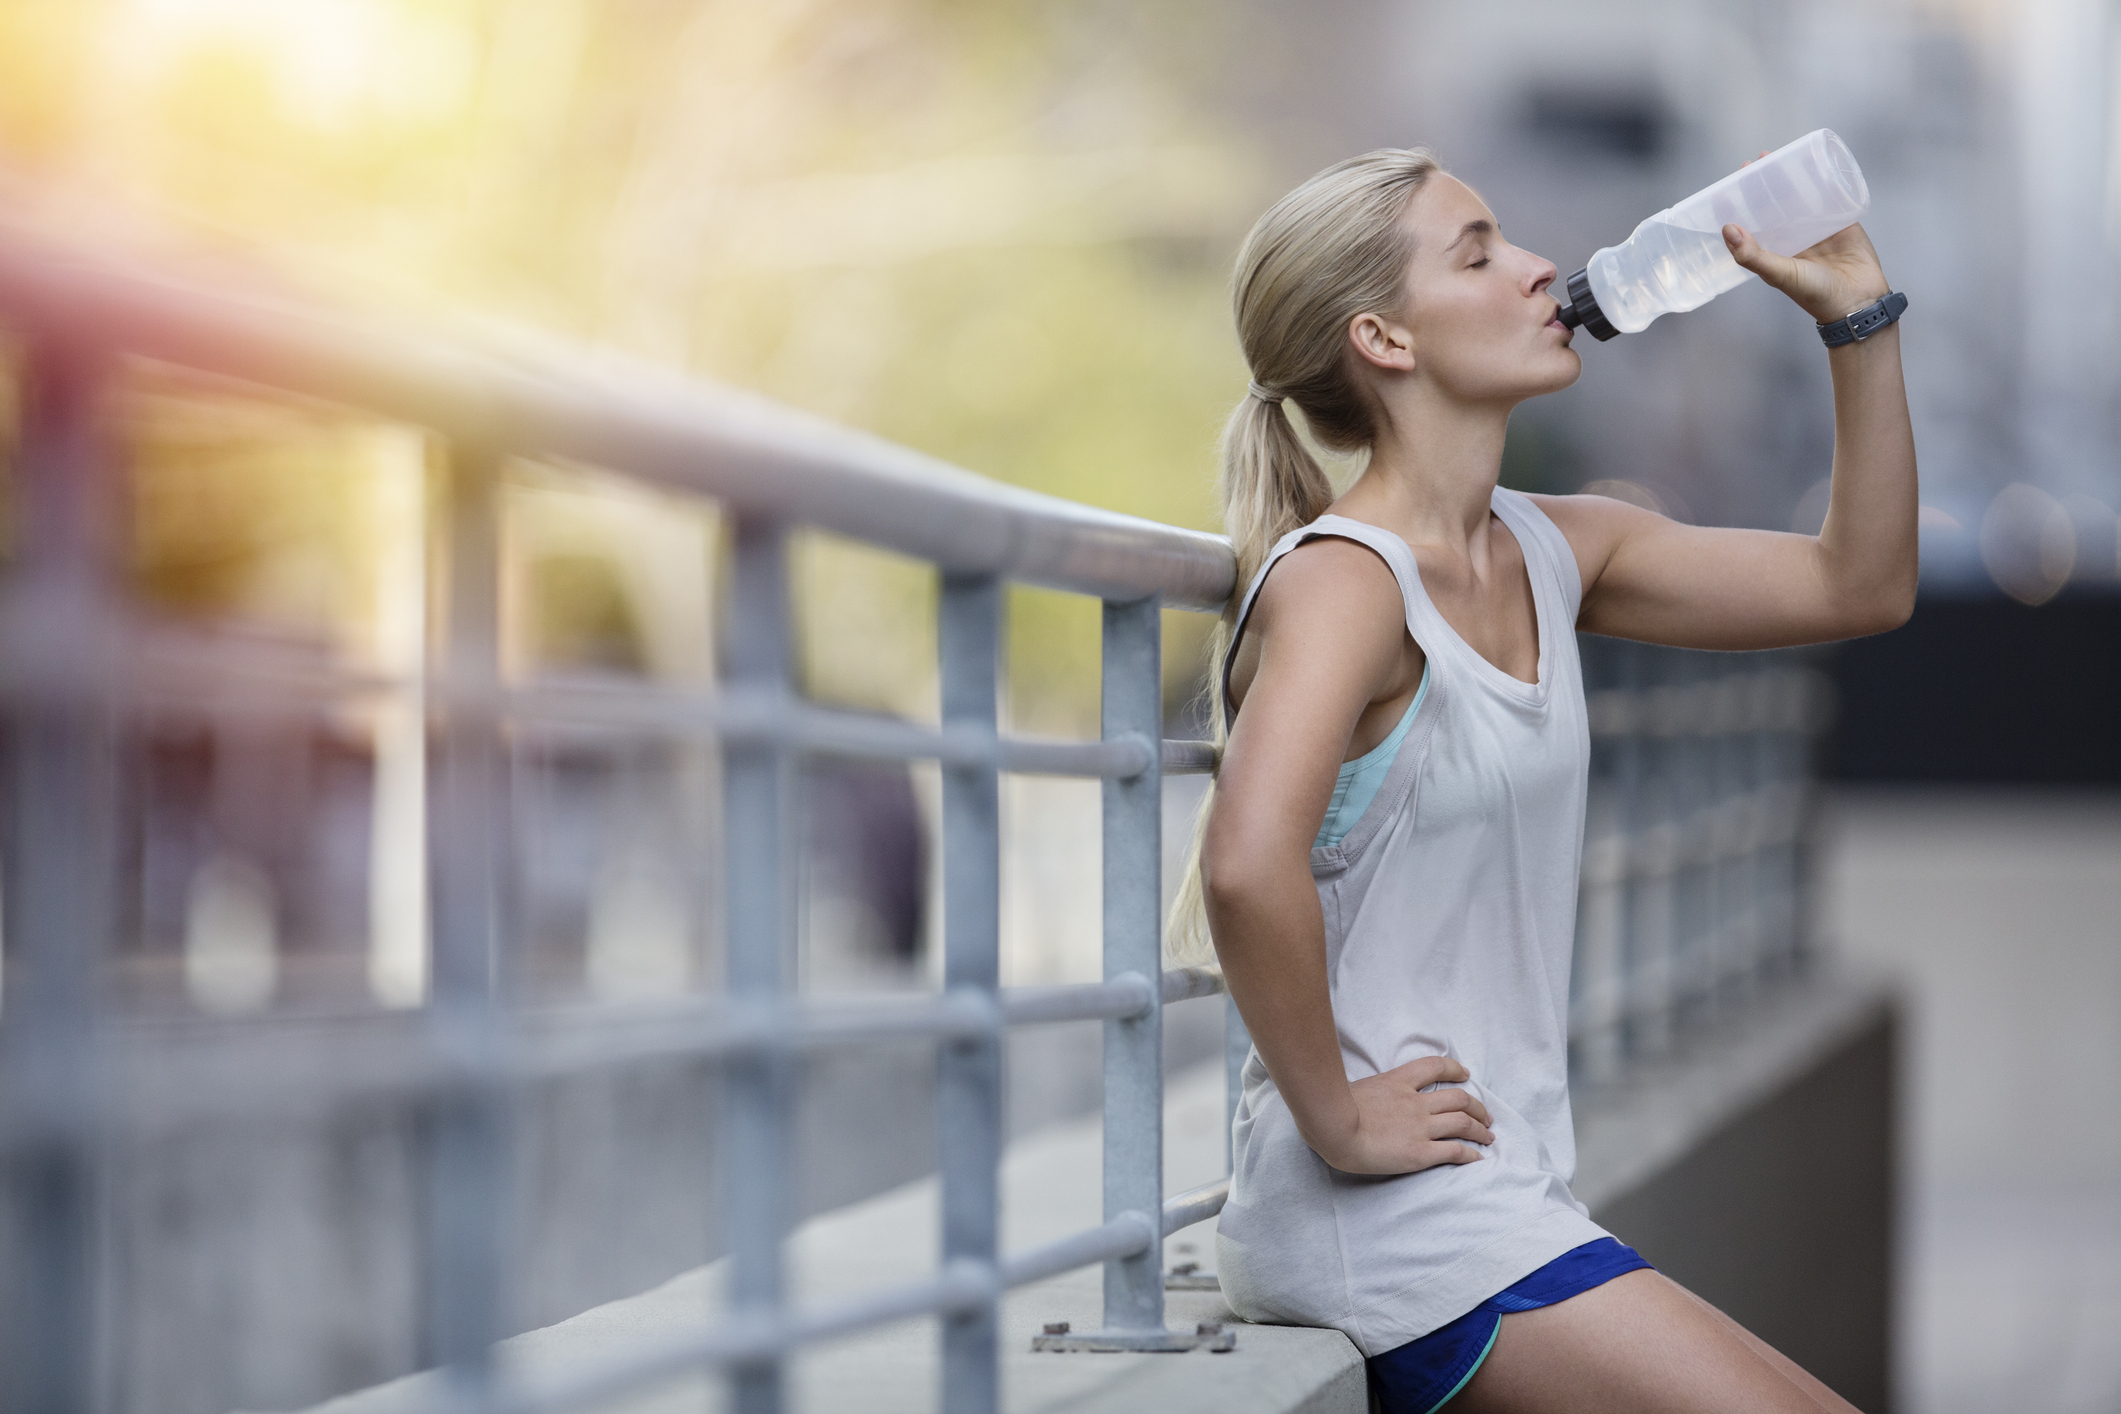 When it comes to staying healthy as you age, it's important to stay hydrated. Photo credit: Sam Edwards/Getty Images